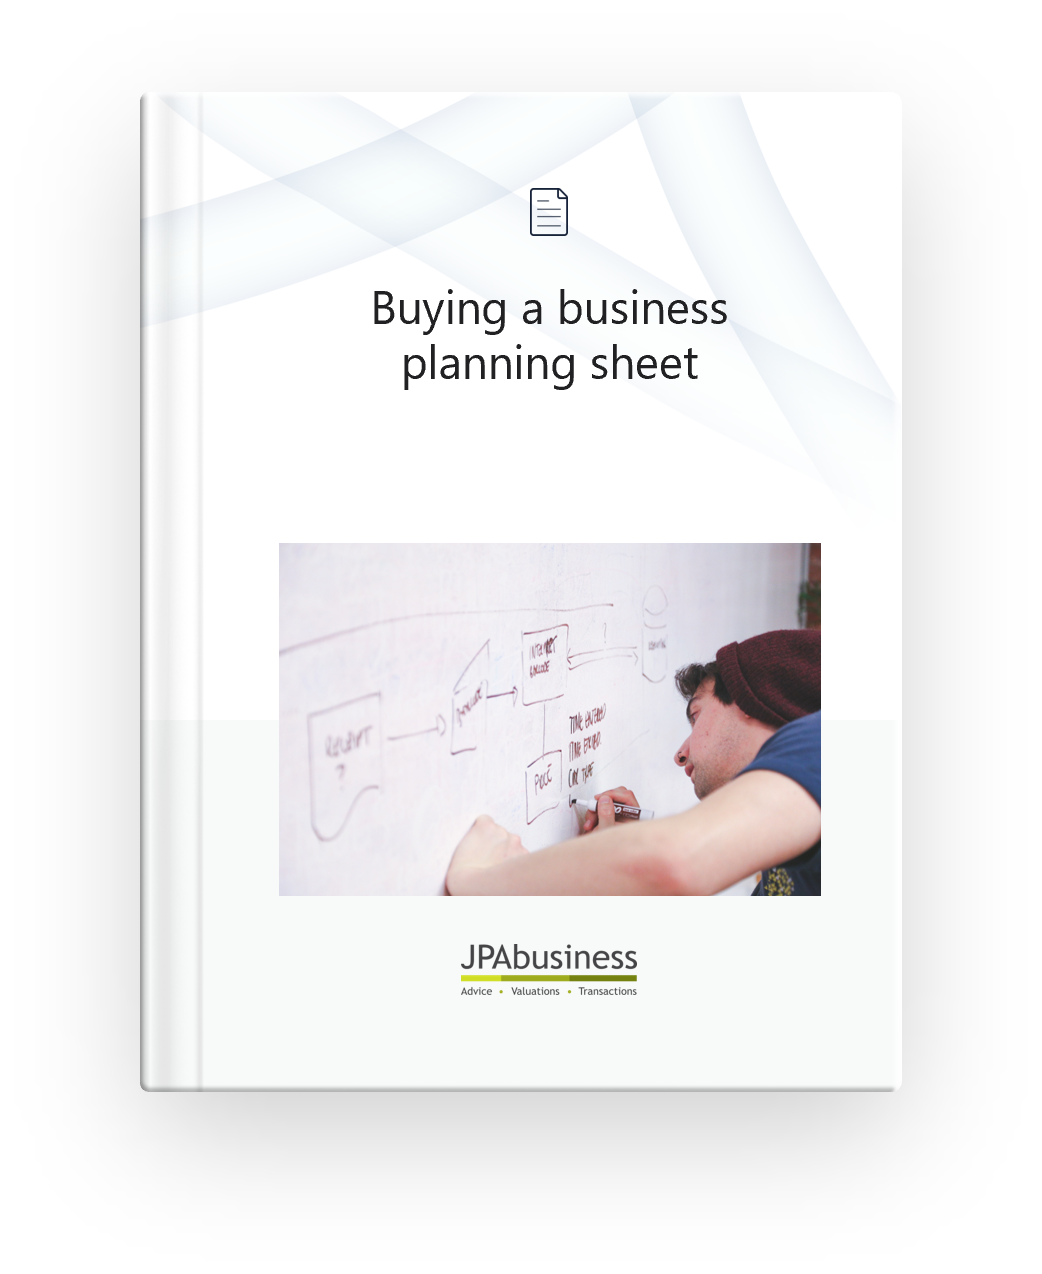 Buying a Business Planning Sheet | JPAbusiness